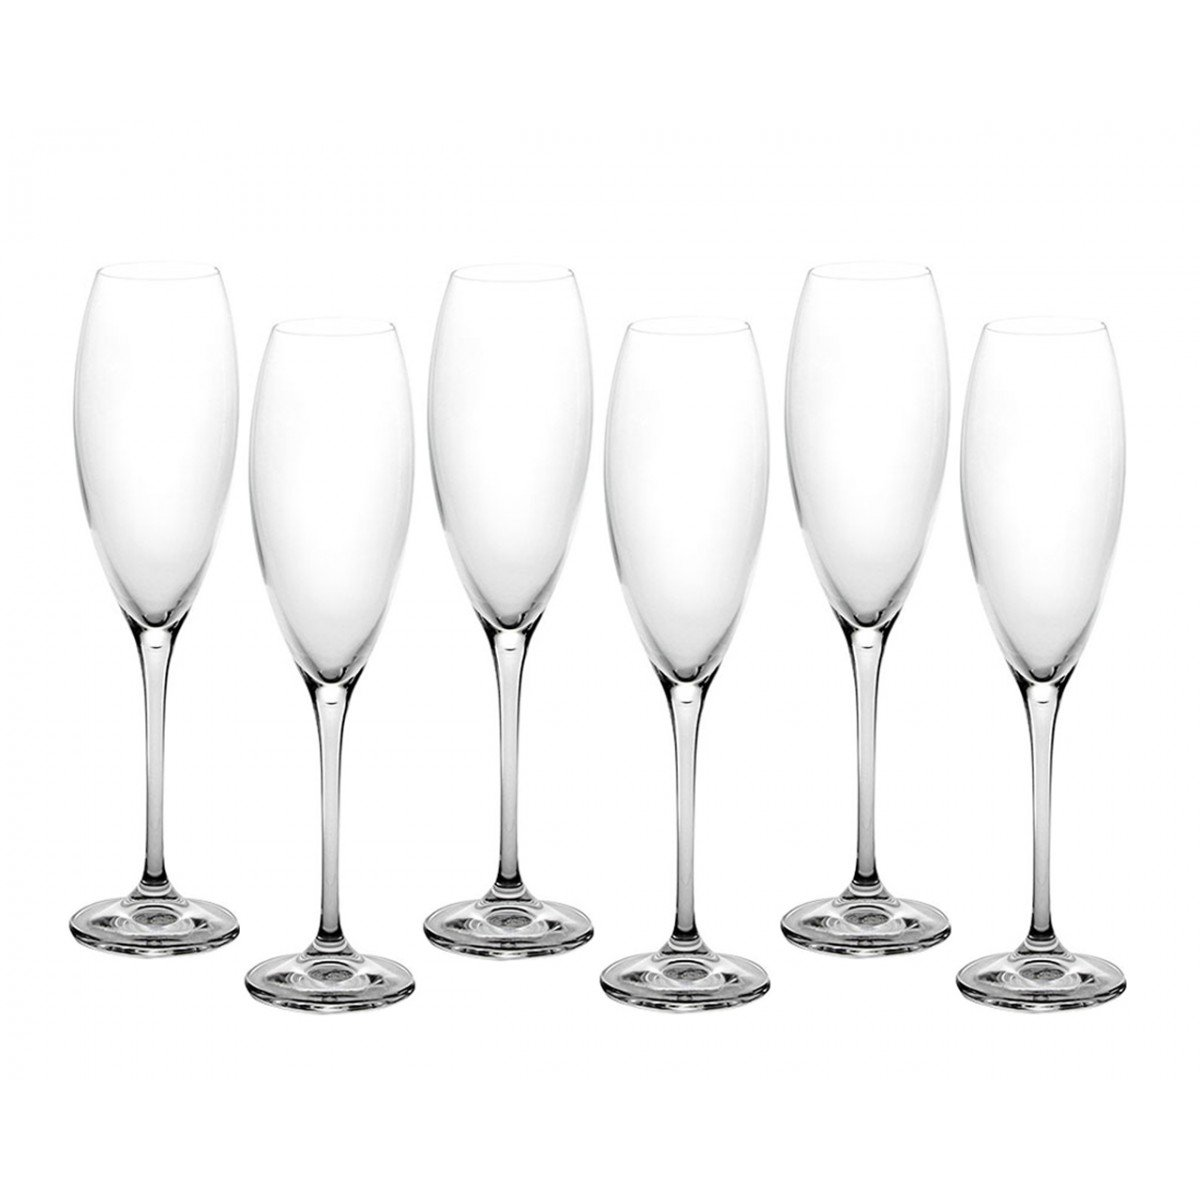 Bohemia Crystal Set of 6 Cecilia Champagne Glasses 290ml 10.2oz Clear Glass Wine Flutes Ideal Gift for Parties SIX PACK